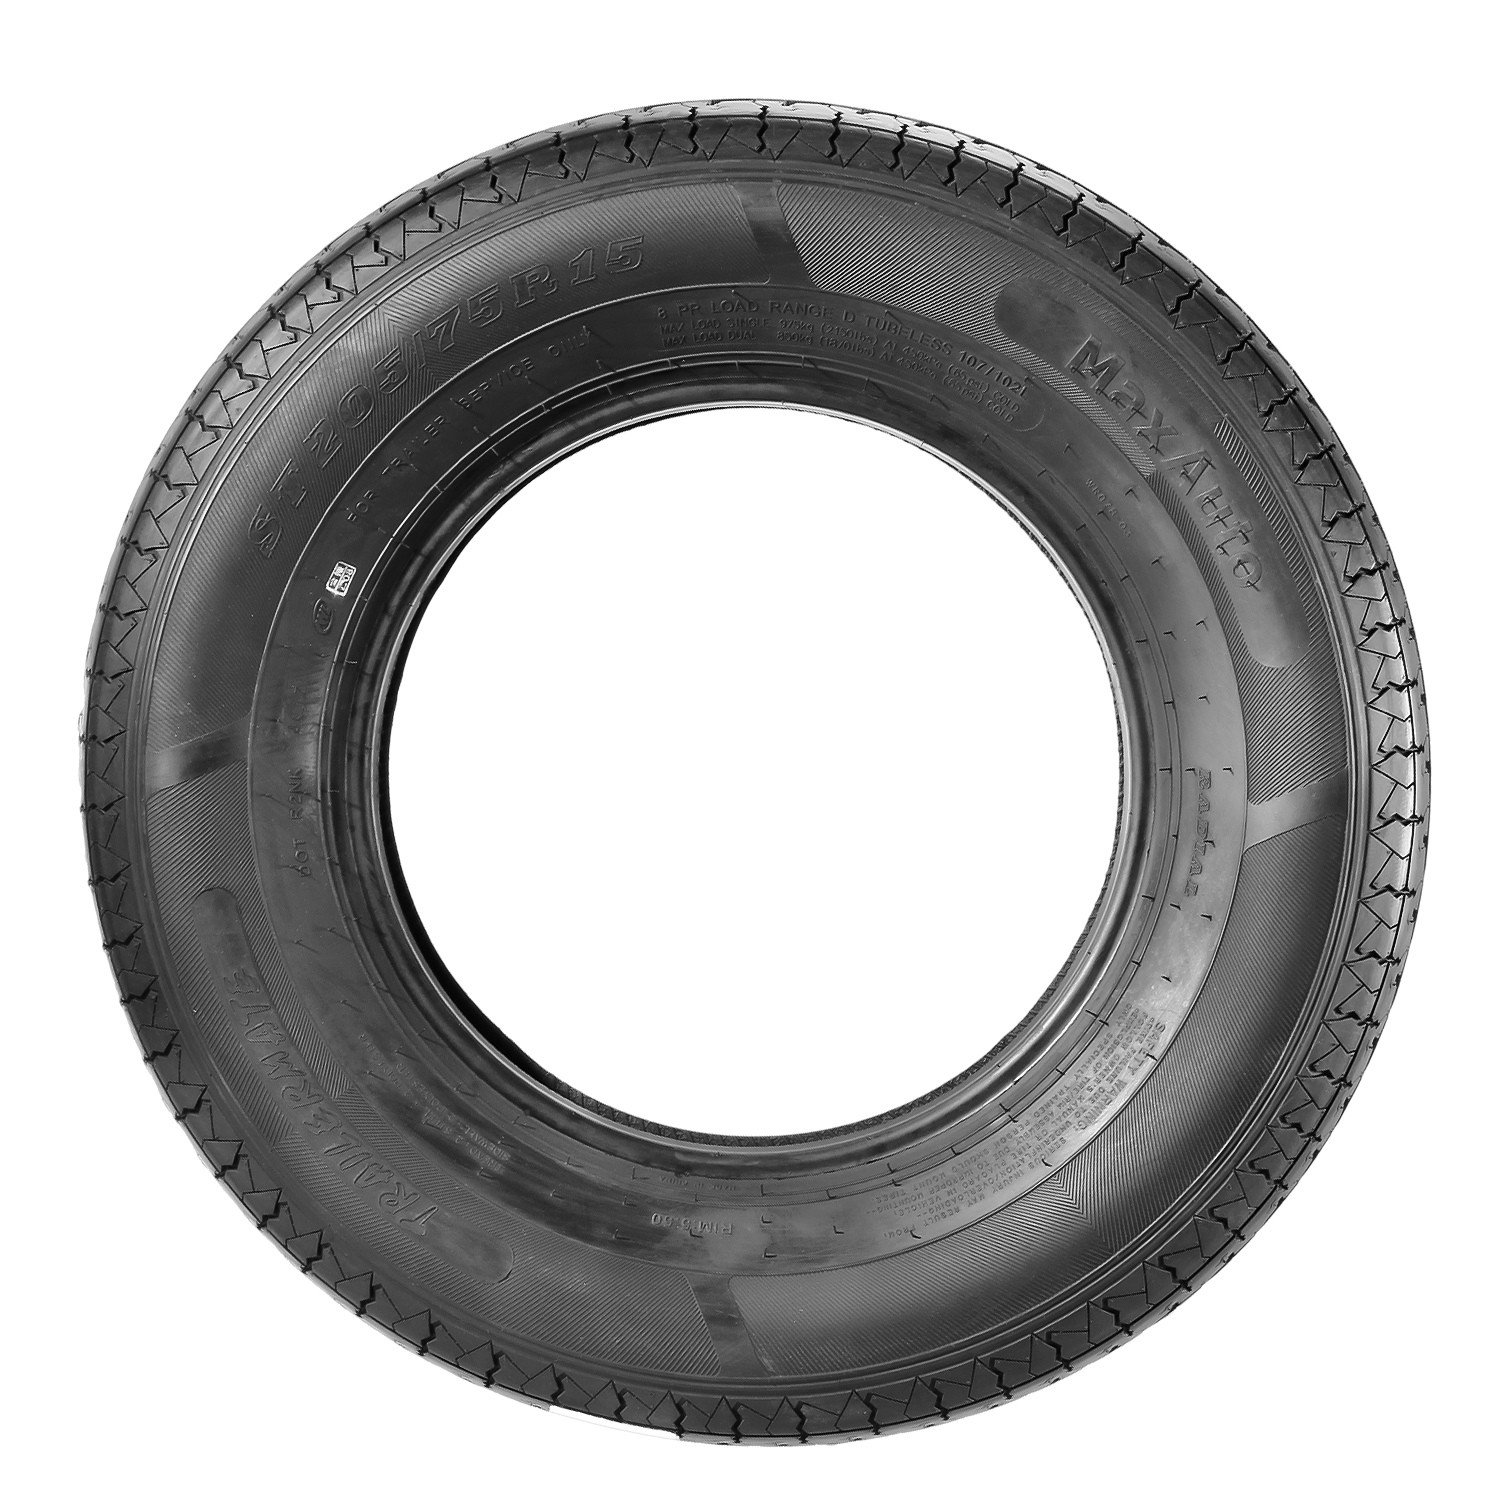 MaxAuto Radial Trailer Tires - ST205/75R15 ST205/75R-15 2057515 8Ply(Pack of 4) by MaxAuto (Image #6)